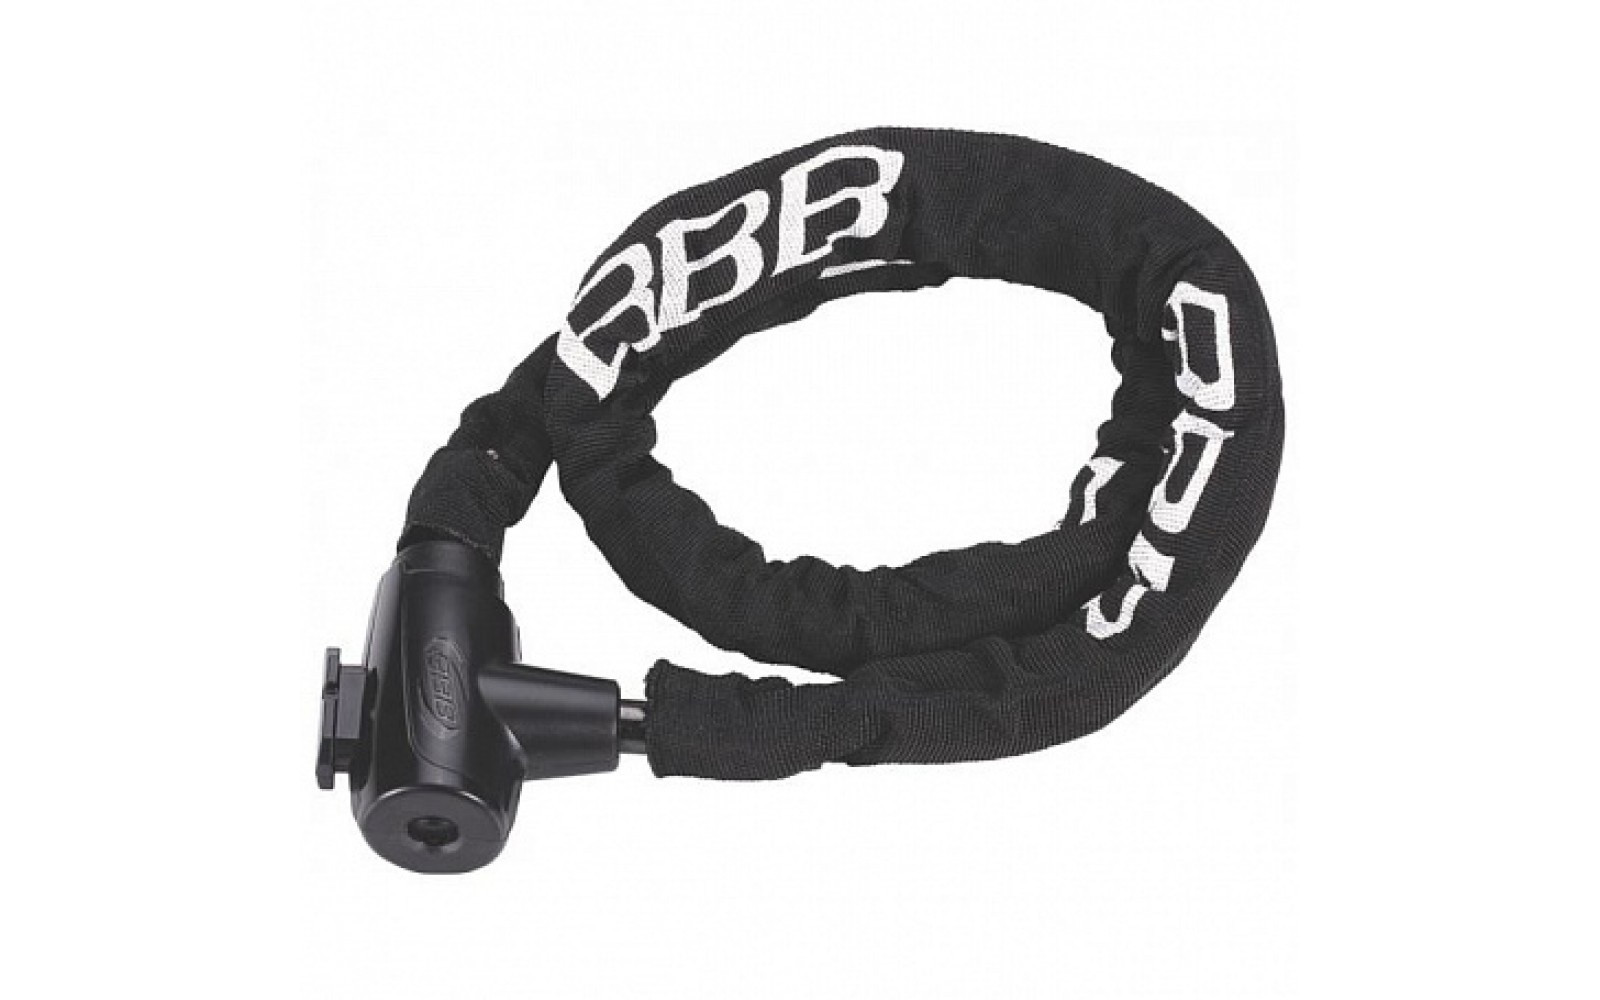 """Замок велосипедный BBB PowerLink 5mm x 1000mm chain cable lock <i class=""""icon product-card_star-mask""""></i>"""